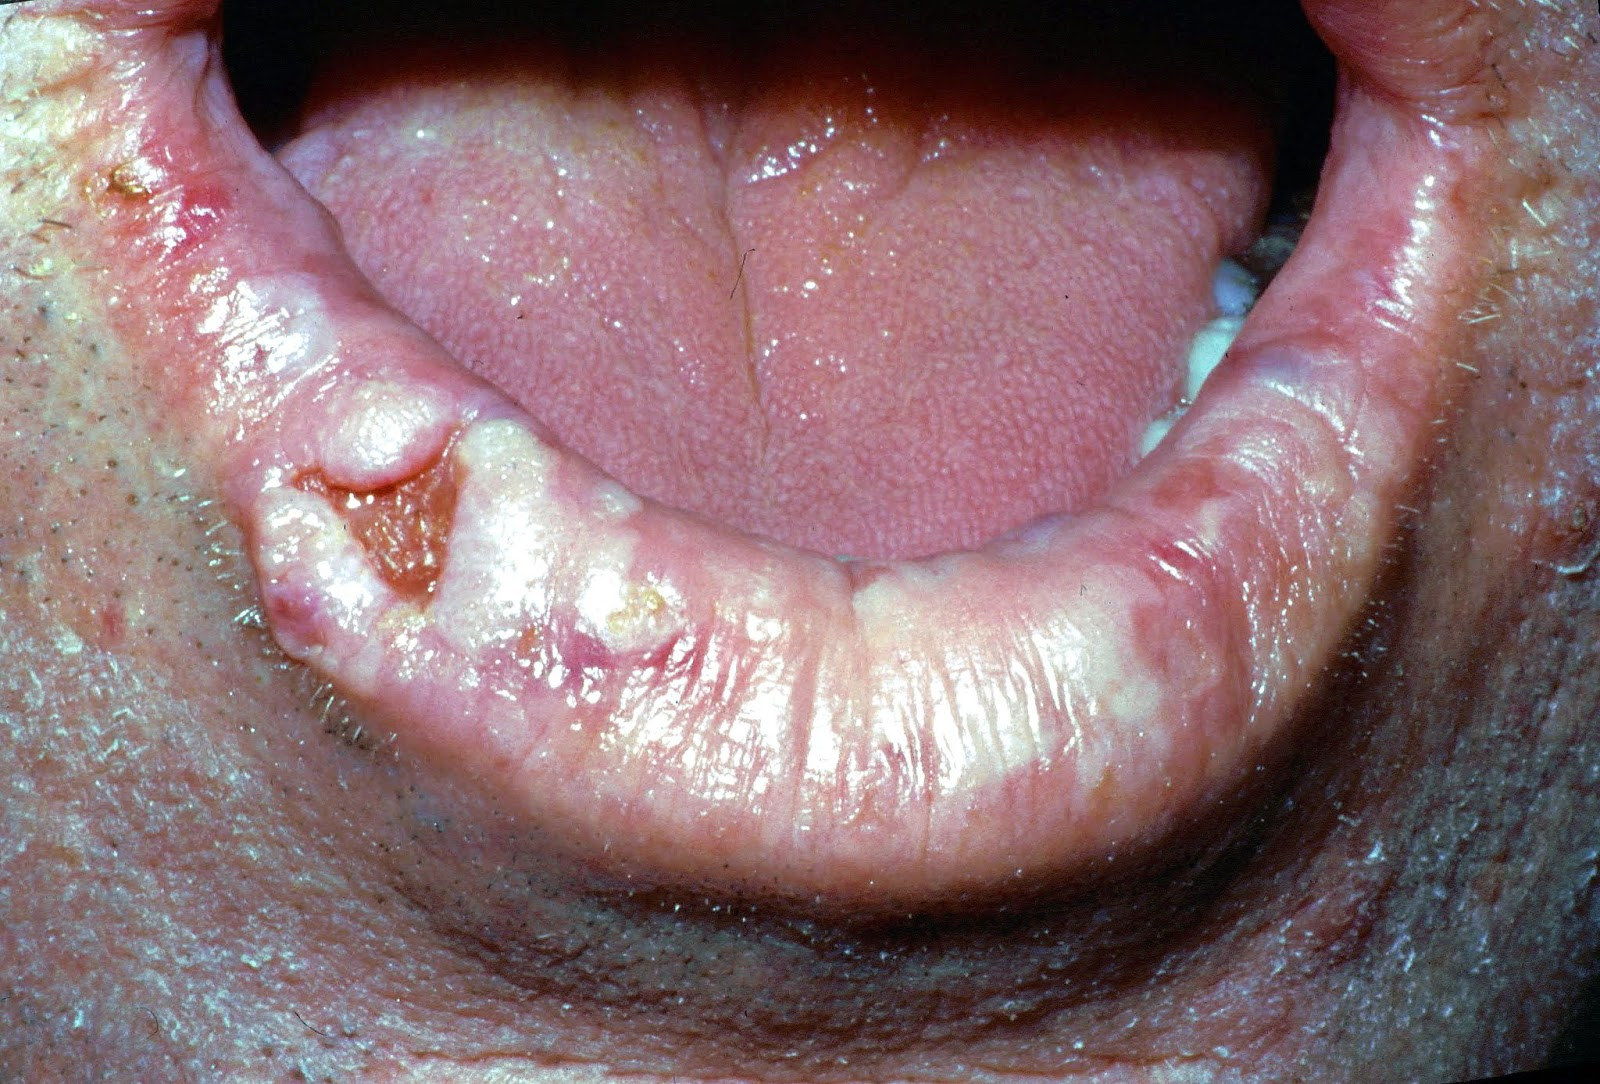 lip-cancer-symptoms-causes